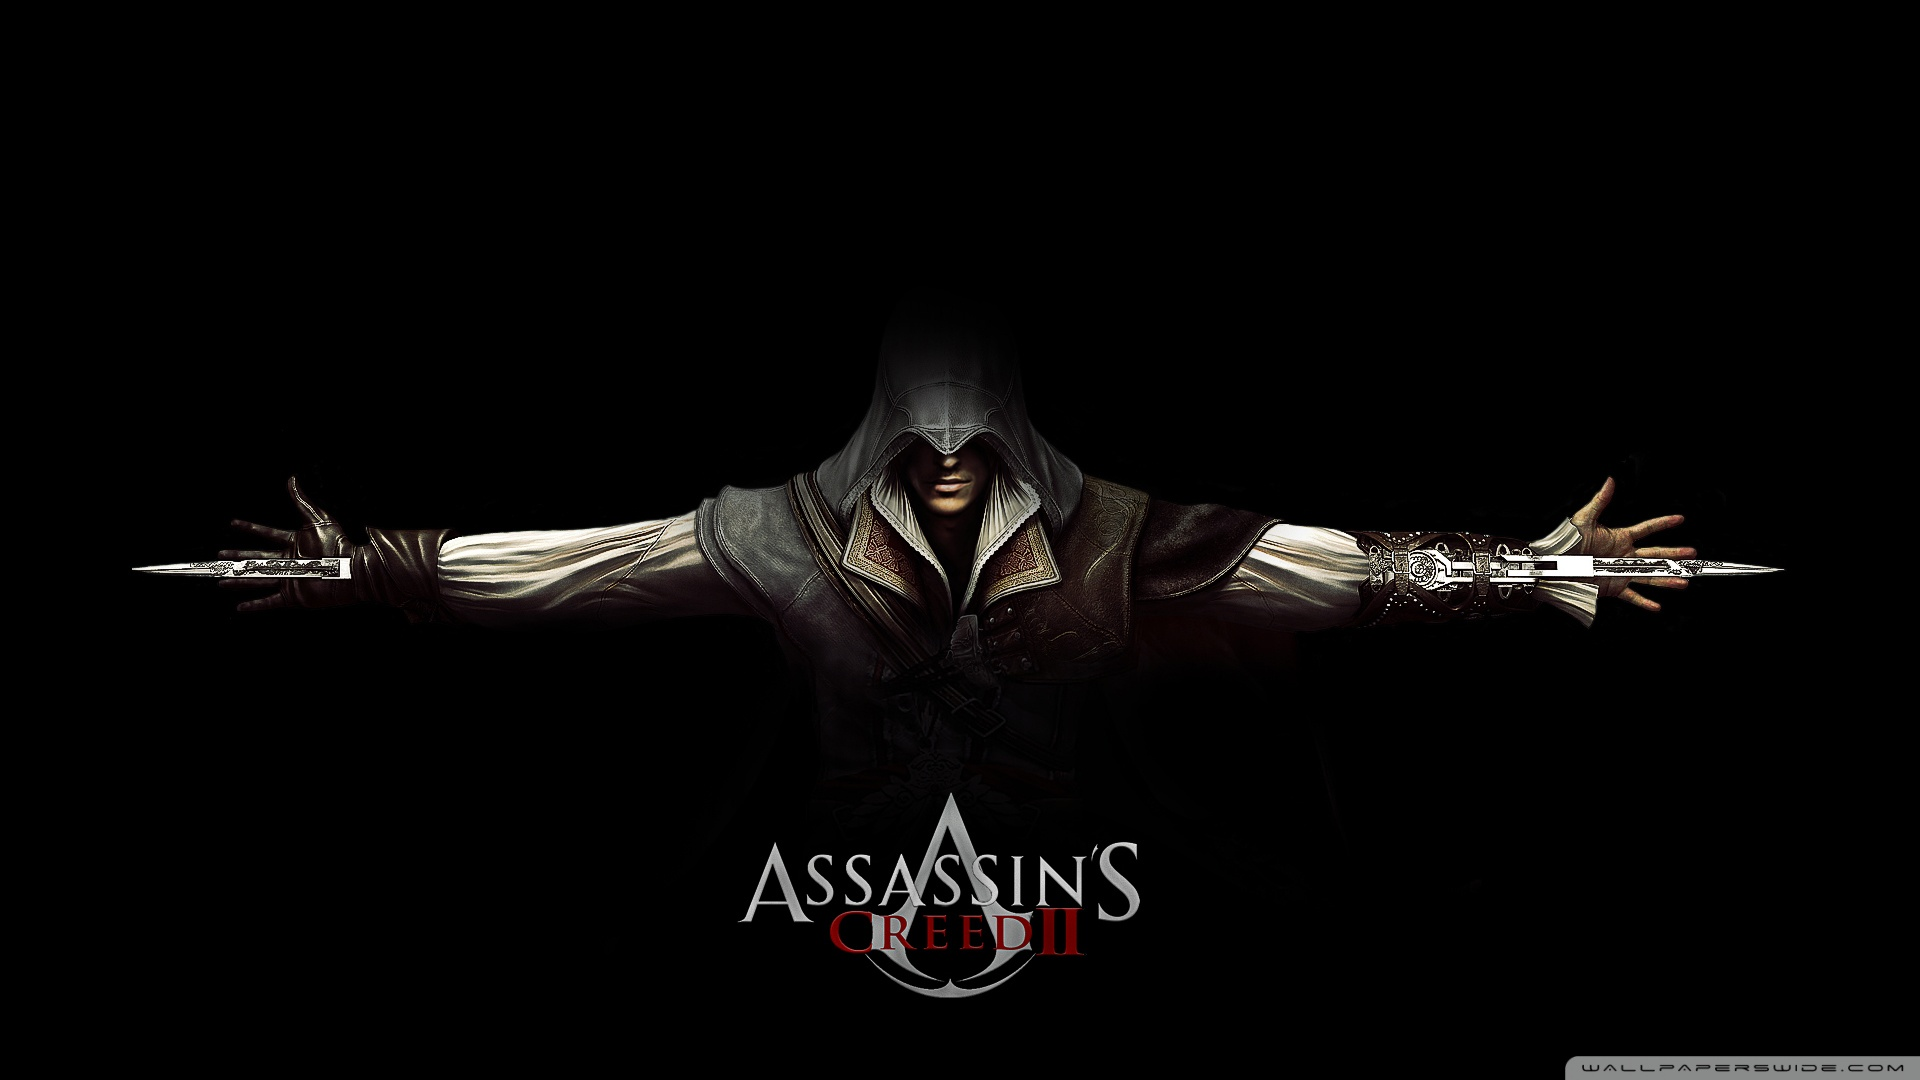 Assassins-Creed-Ezio-Black-HD-desktop-Widescreen-wallpaper-wp3802577